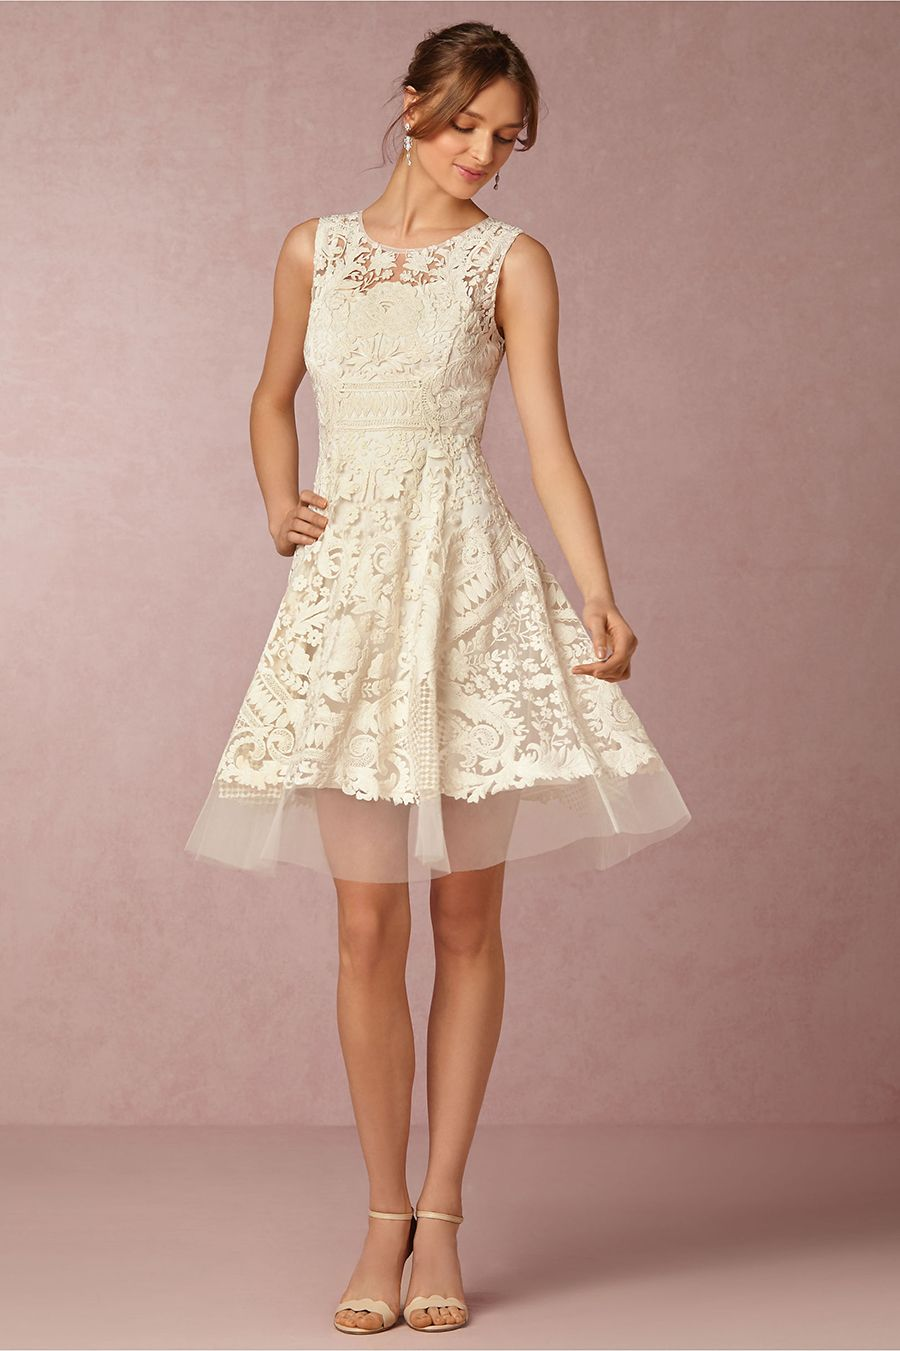 Lace dresses for wedding reception  BHLDNus Spring Collection  in Collaboration With Marchesa